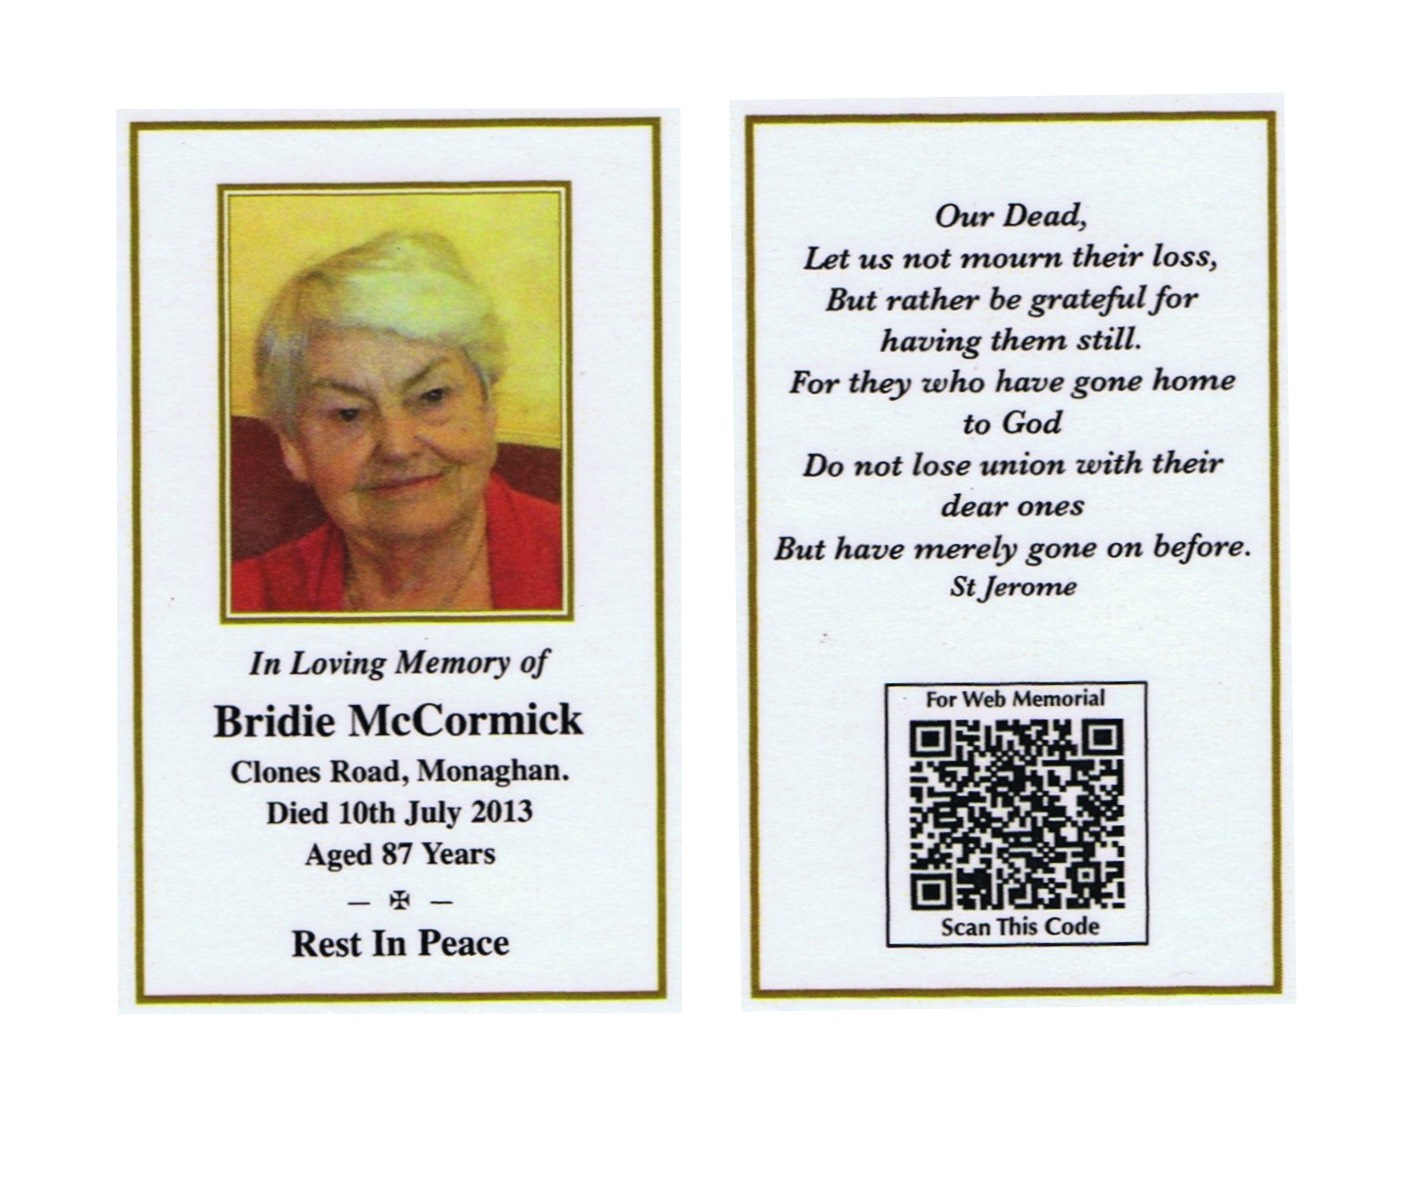 funeral remembrance cards template - memorial cards eulogy eulogy